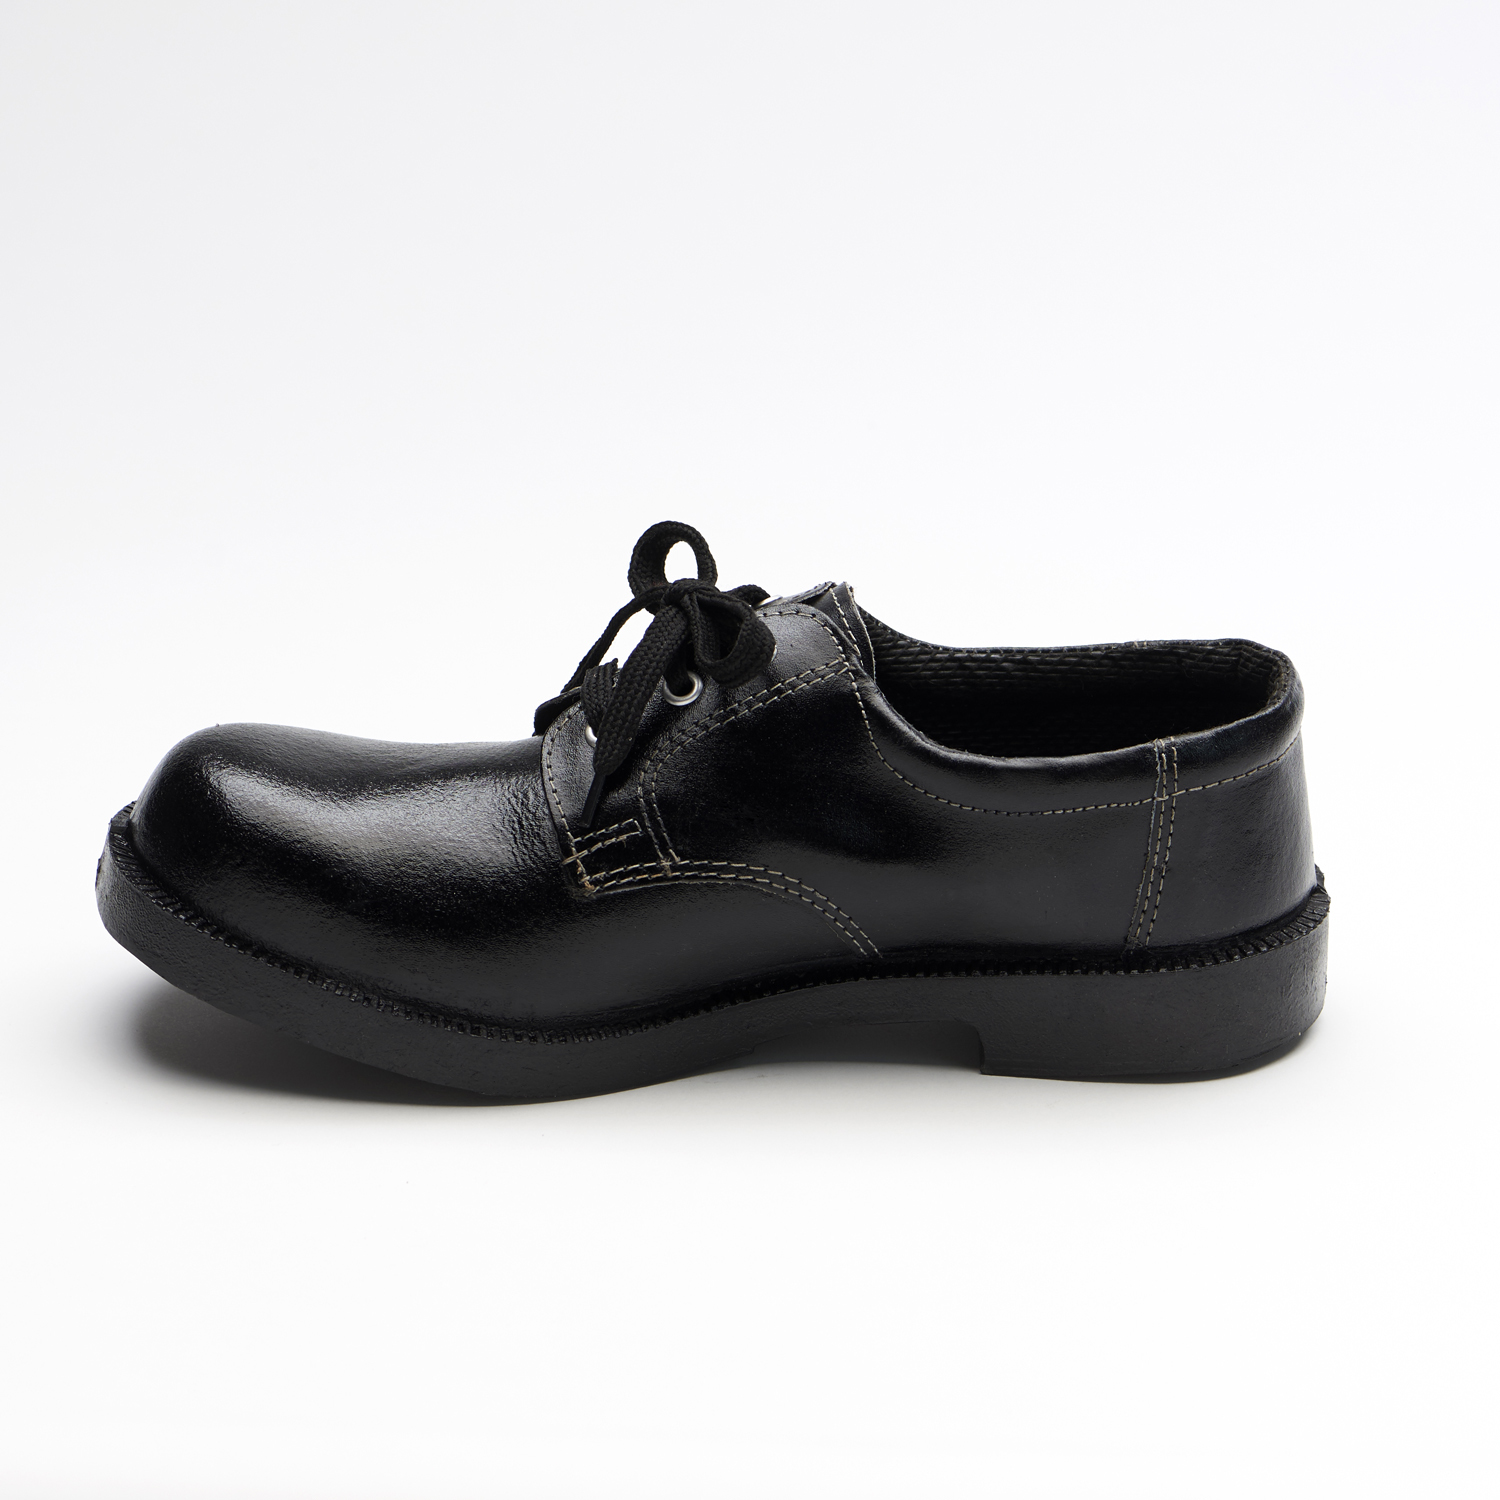 Economy Derby ST PVC Safety Shoes